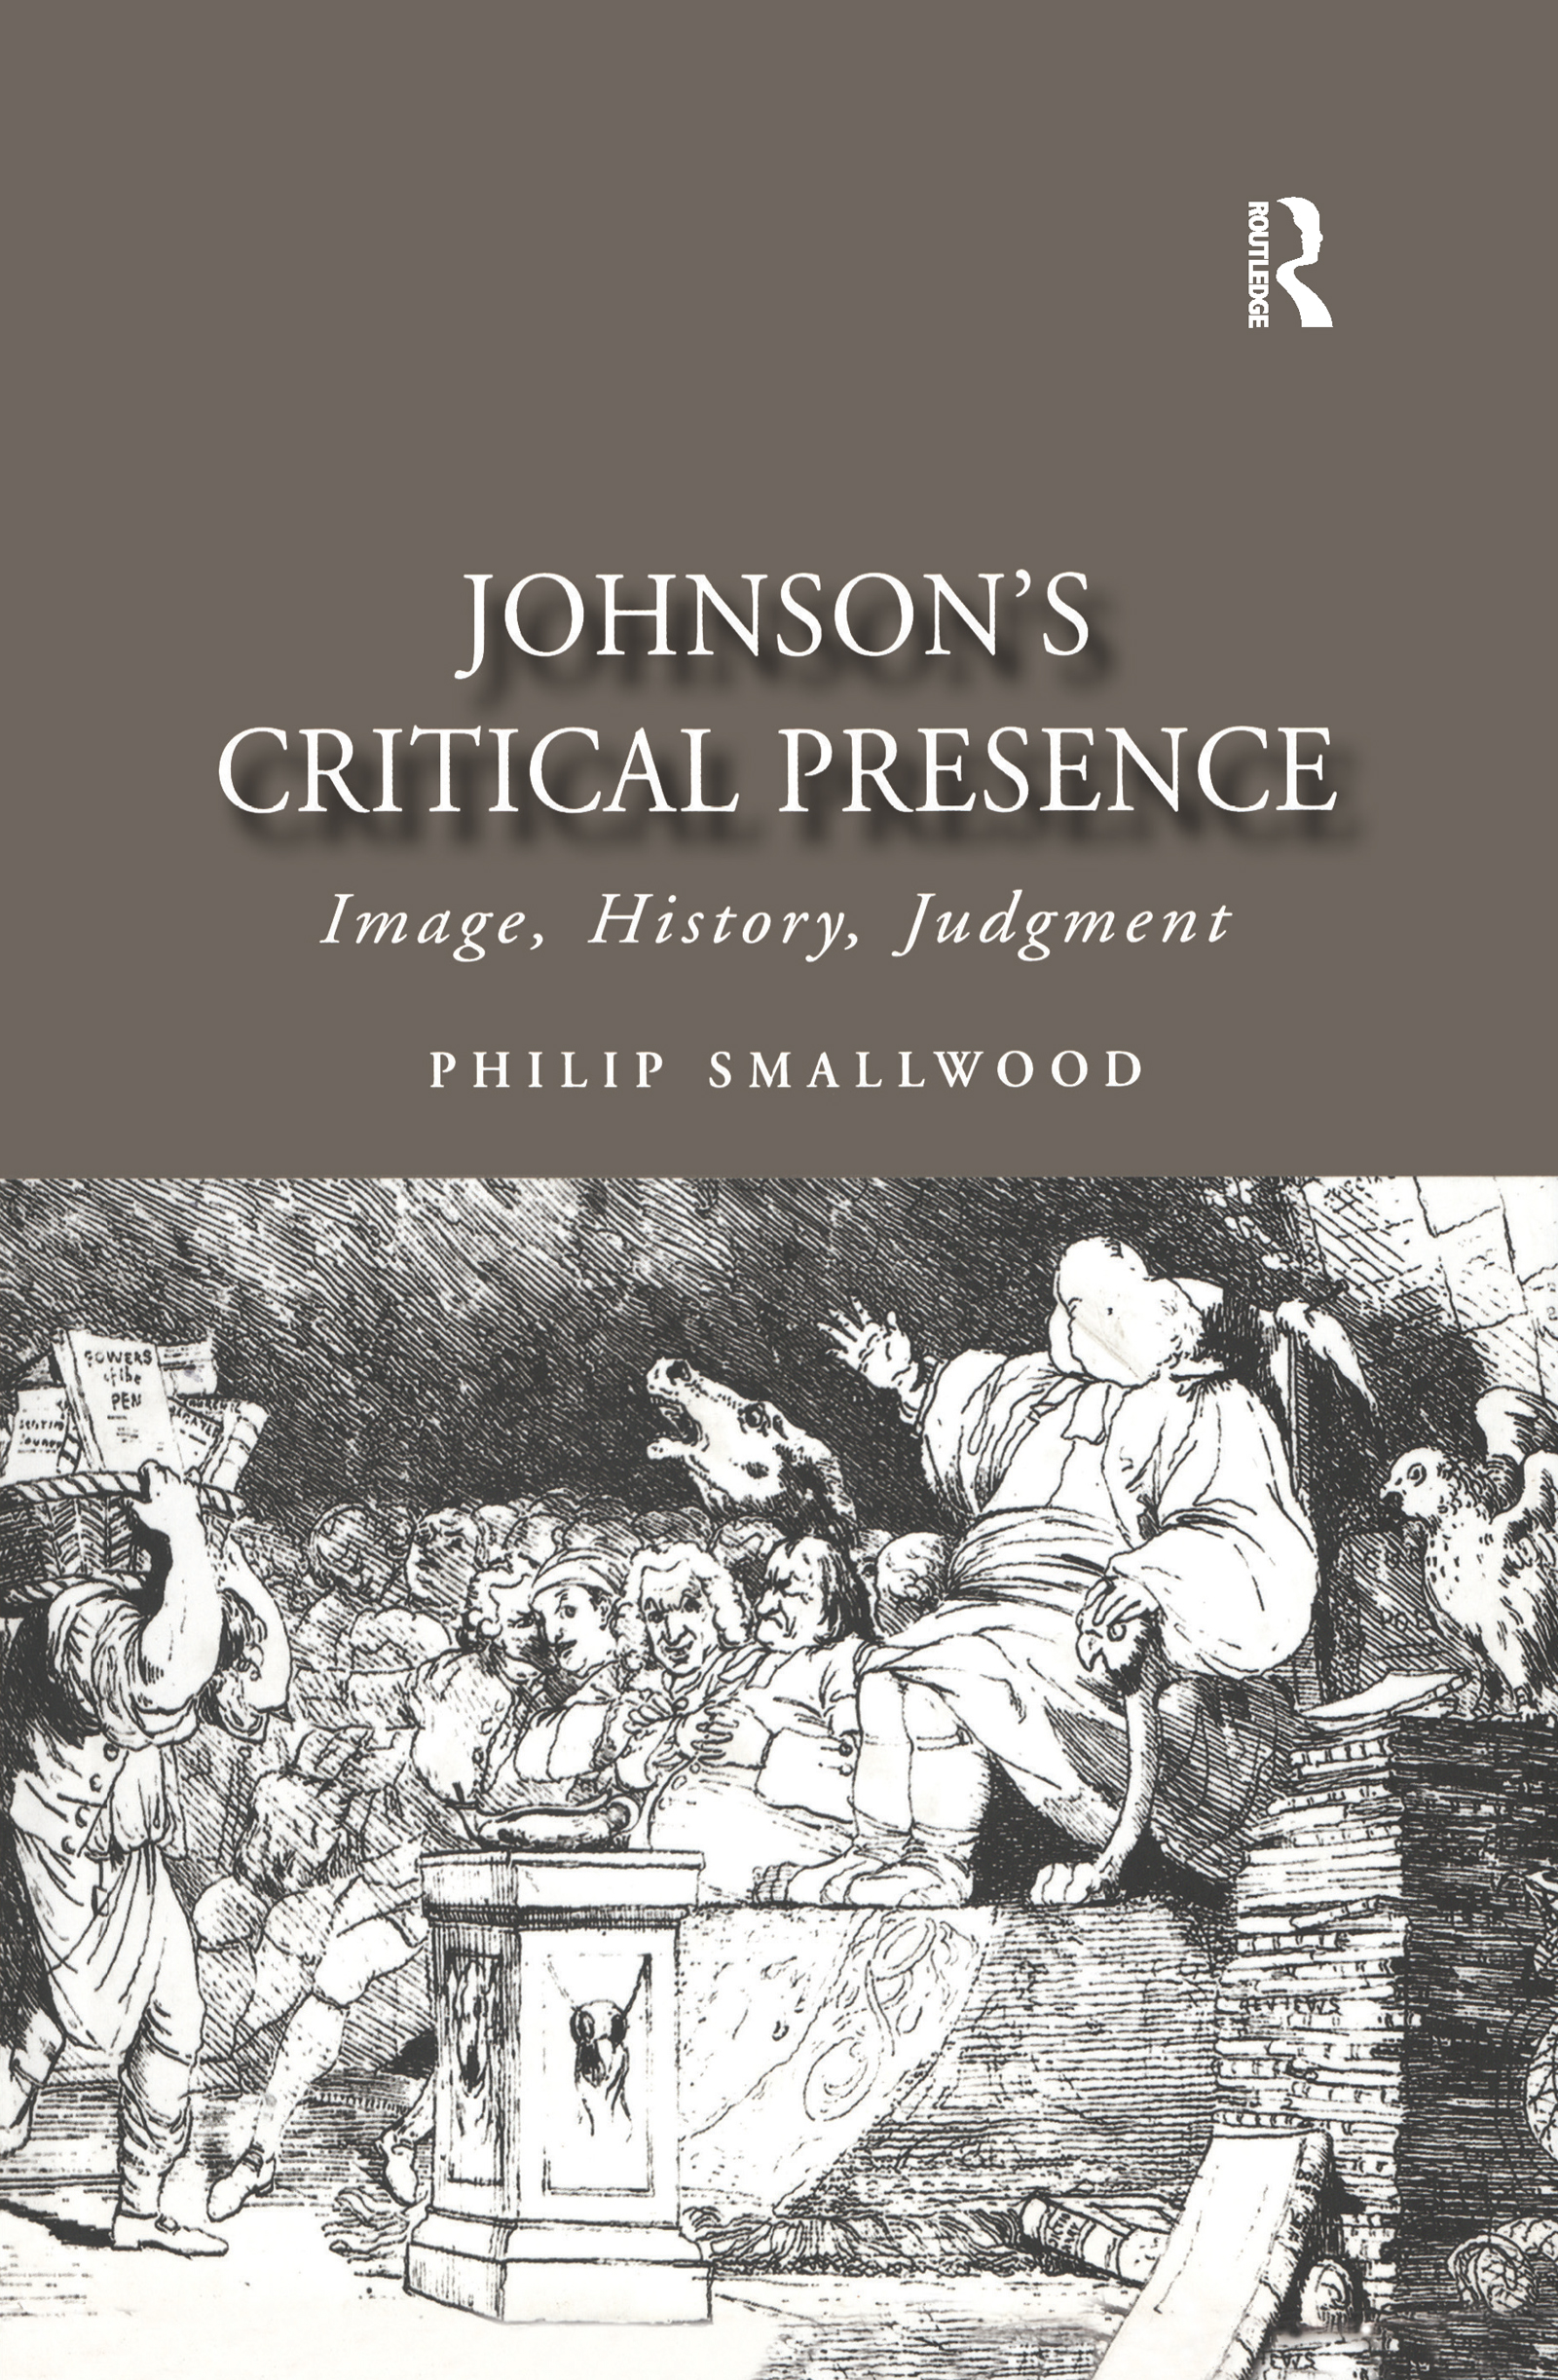 Chapter 6 From Image to History: Johnson's Criticism and the Genealogy of Romanticism